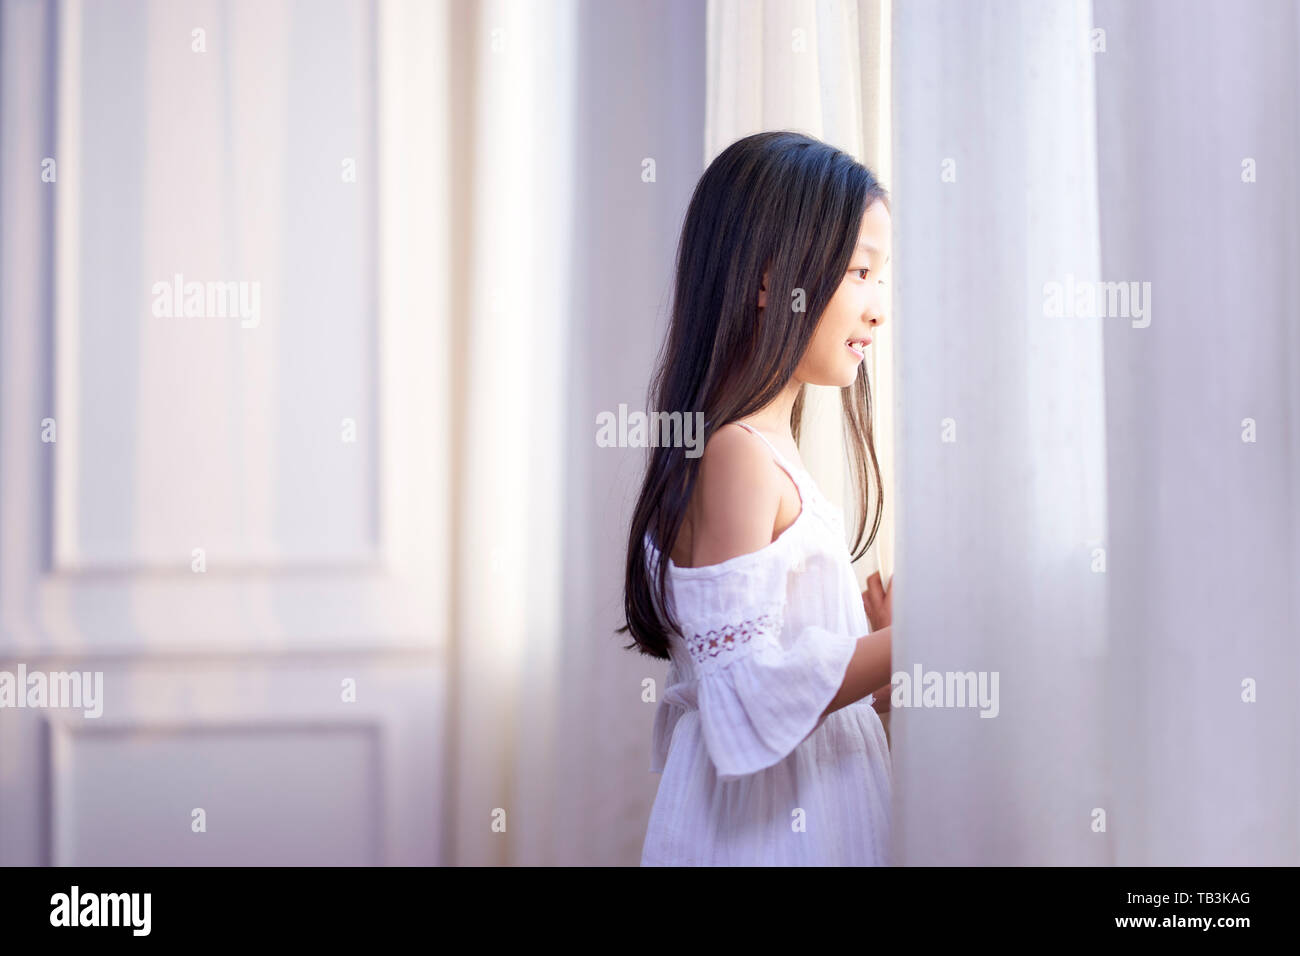 Beautiful Little Asian Girl With Long Black Hair Looking Out Of Window In Bedroom Stock Photo Alamy